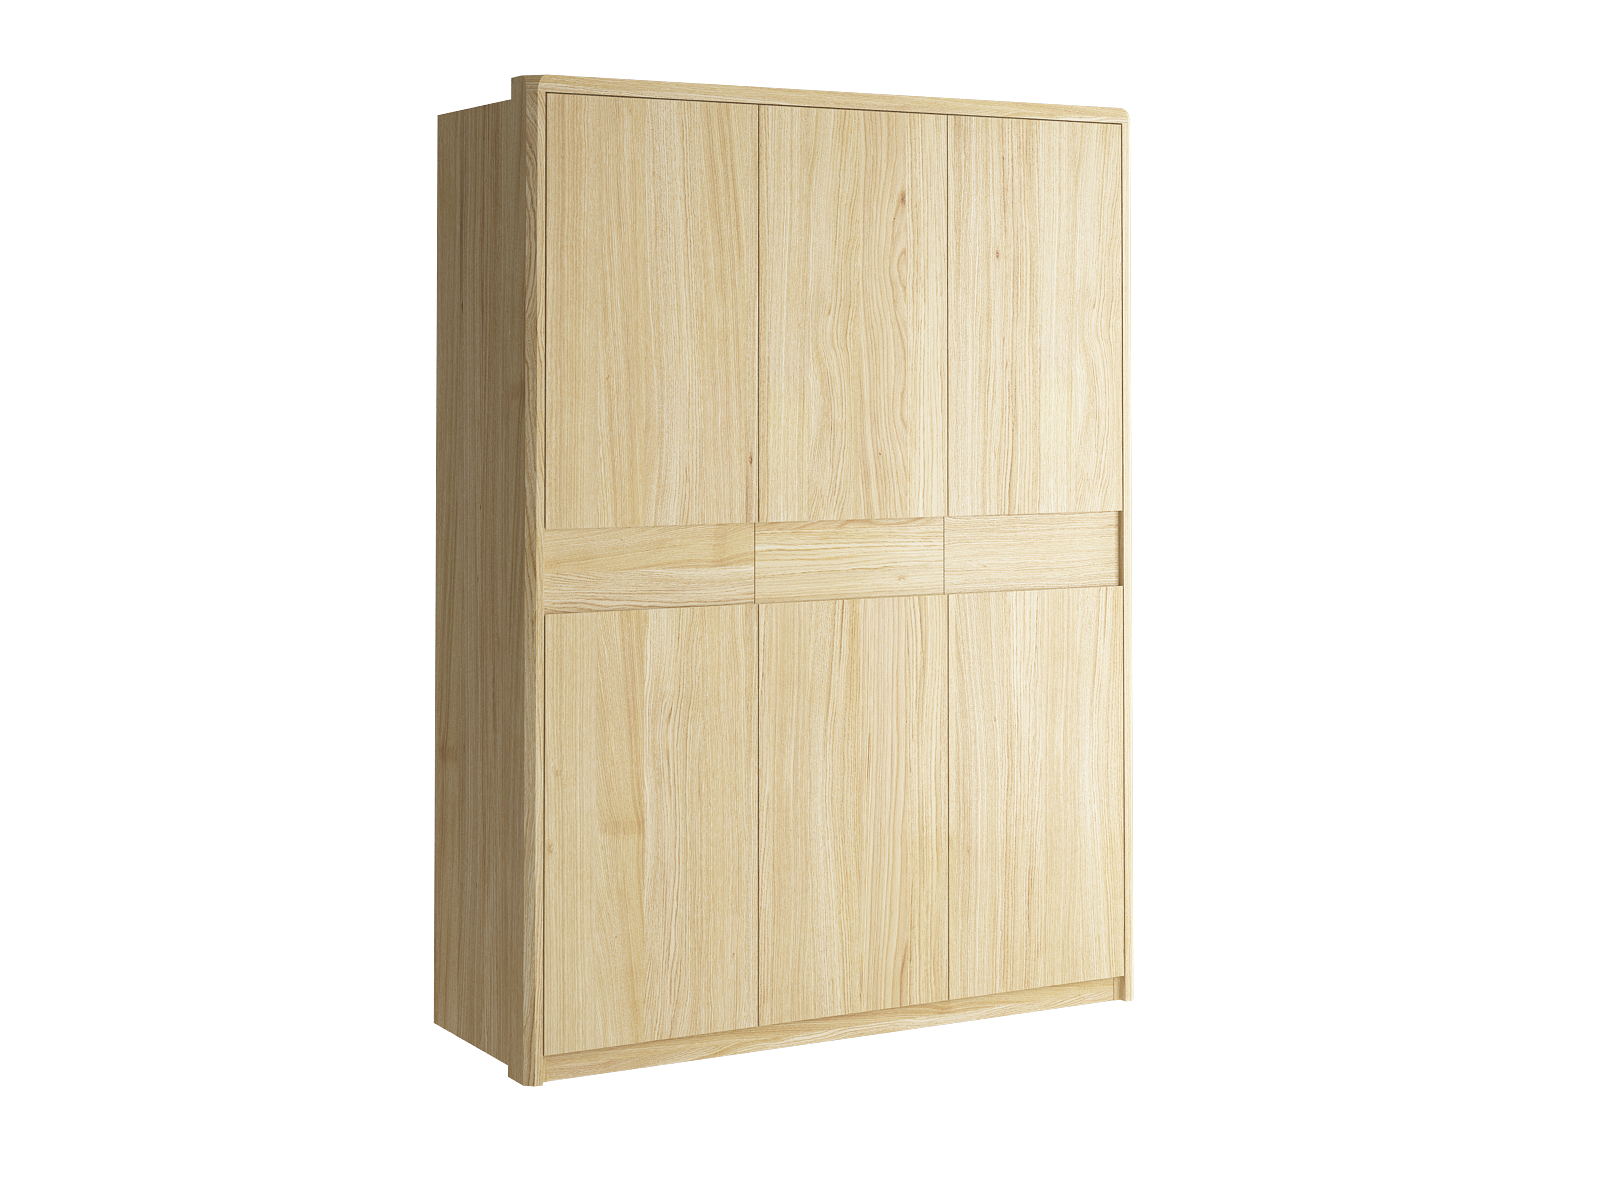 Joy 3 door wardrobe